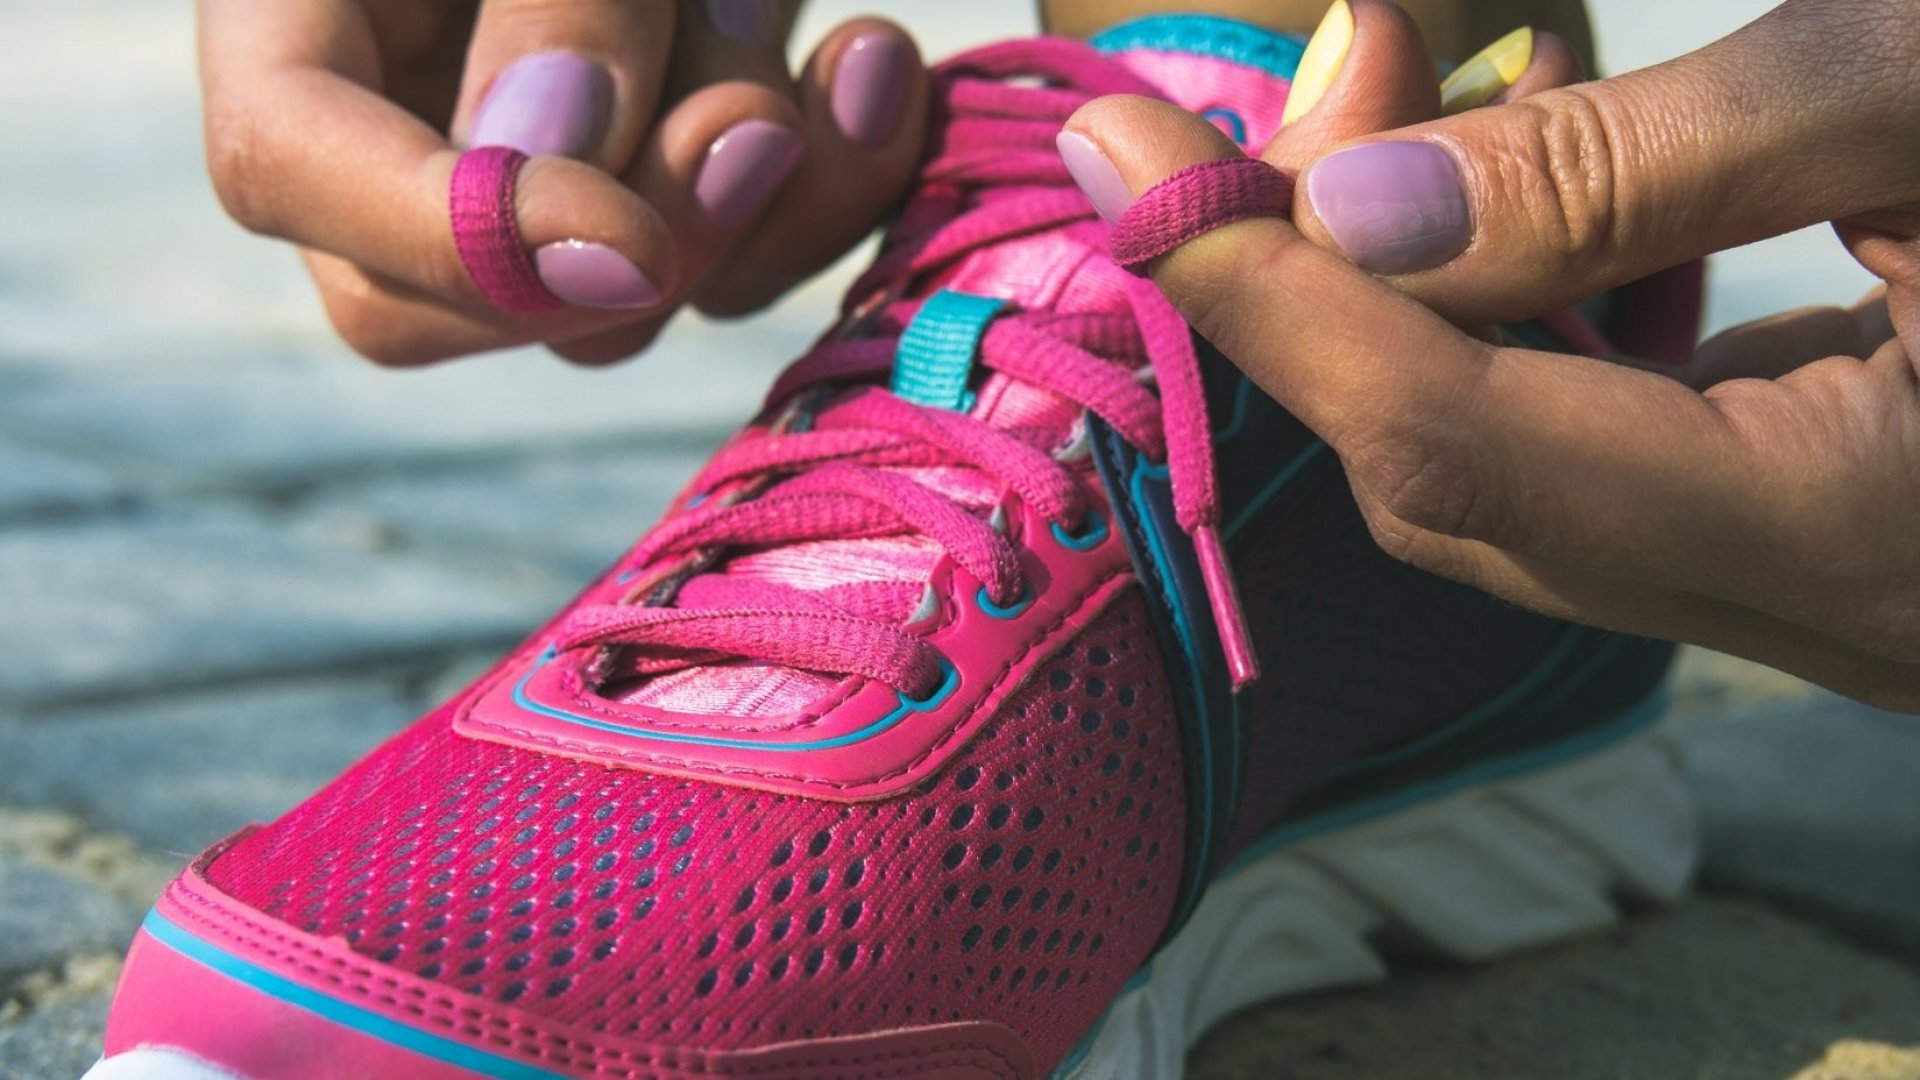 Science Proves There's a Right Way to Tie Your Shoes. You've Probably Been Doing It Wrong